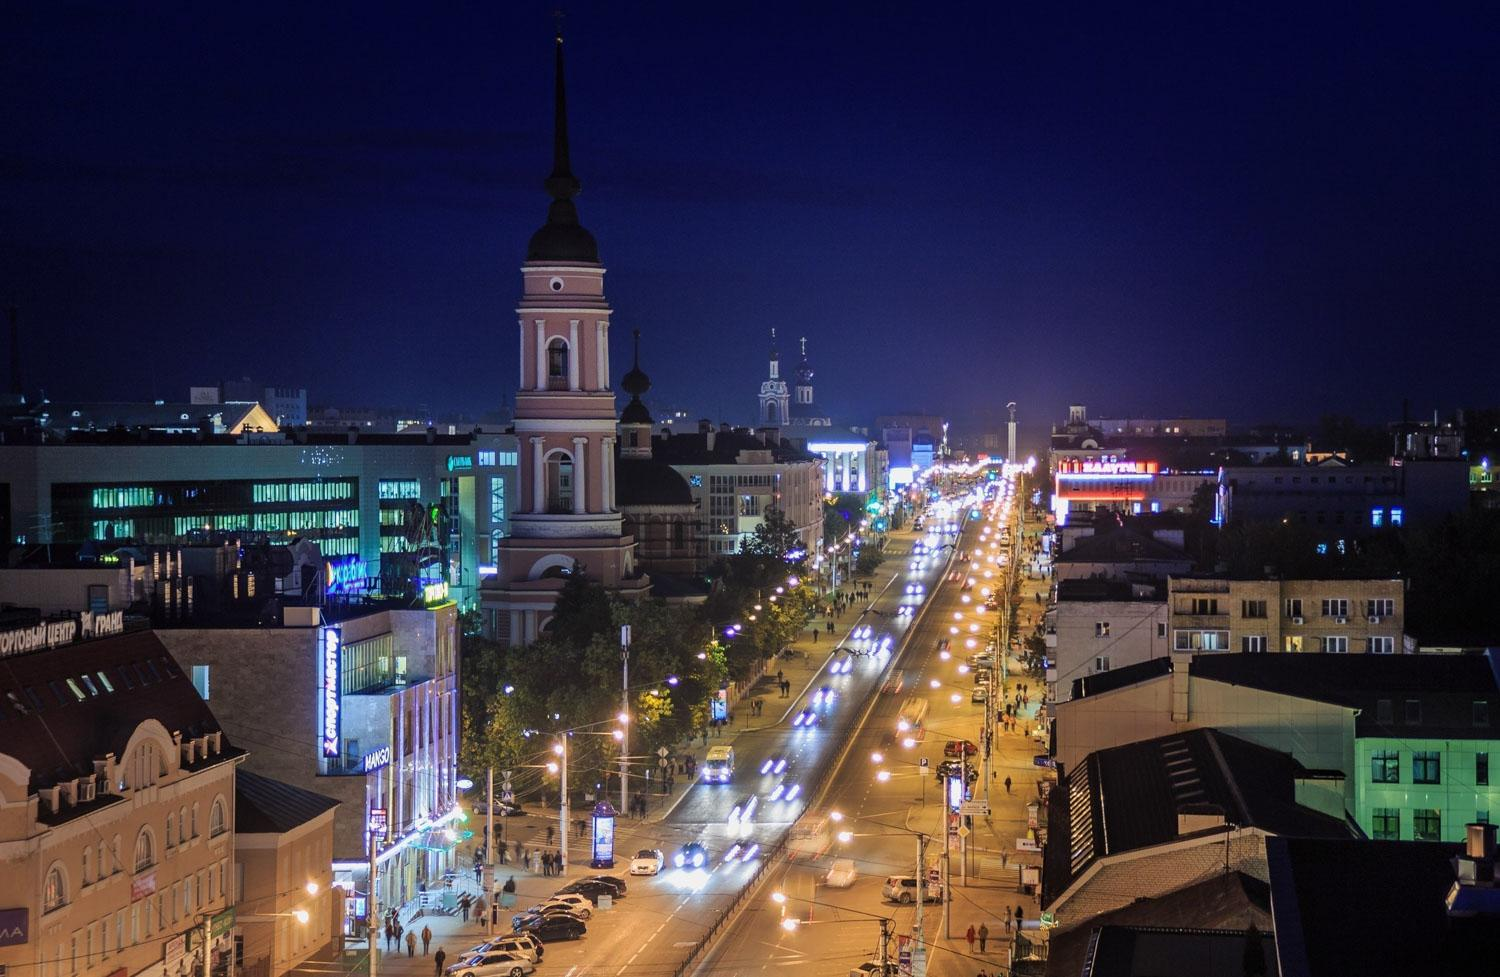 KBT love to Kaluga city